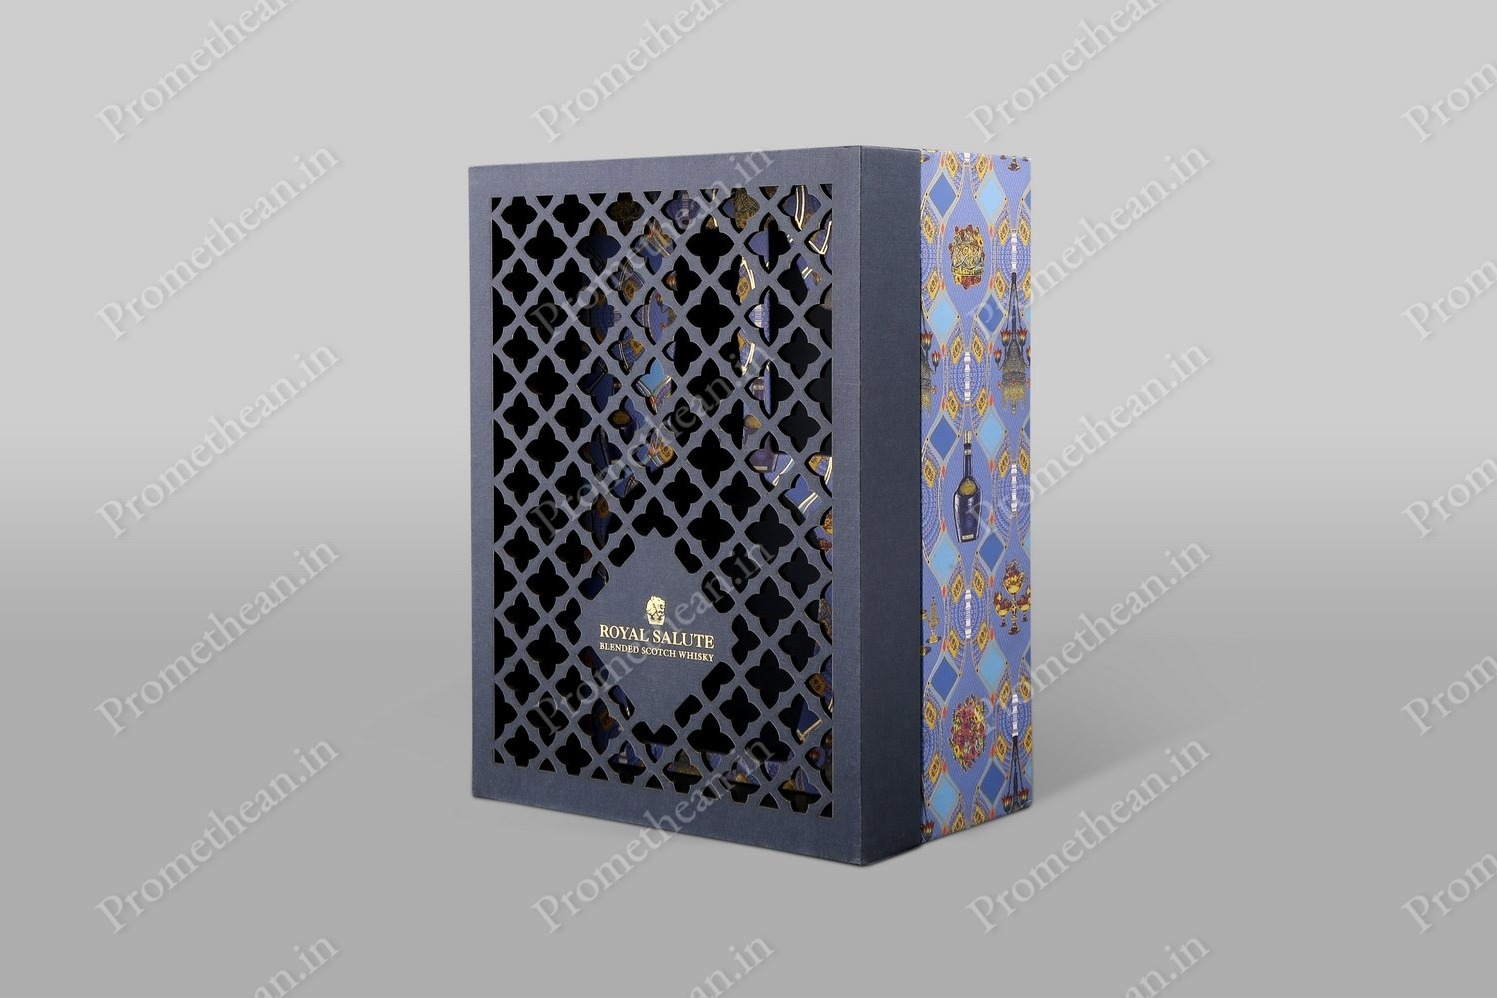 Royal Salute Gift Box